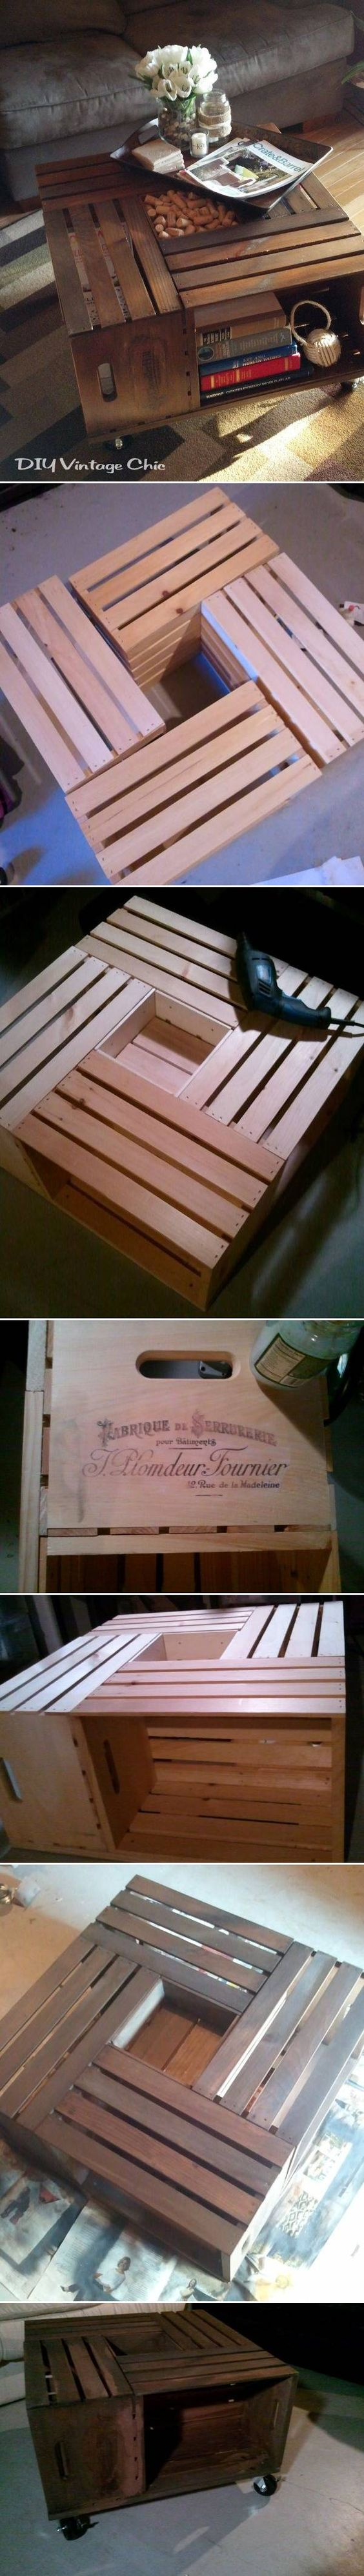 DIY Wine Crate Table             ♪ ♪    ... #inspiration_diy GB#diy GB  http://www.pinterest.com/gigibrazil/boards/